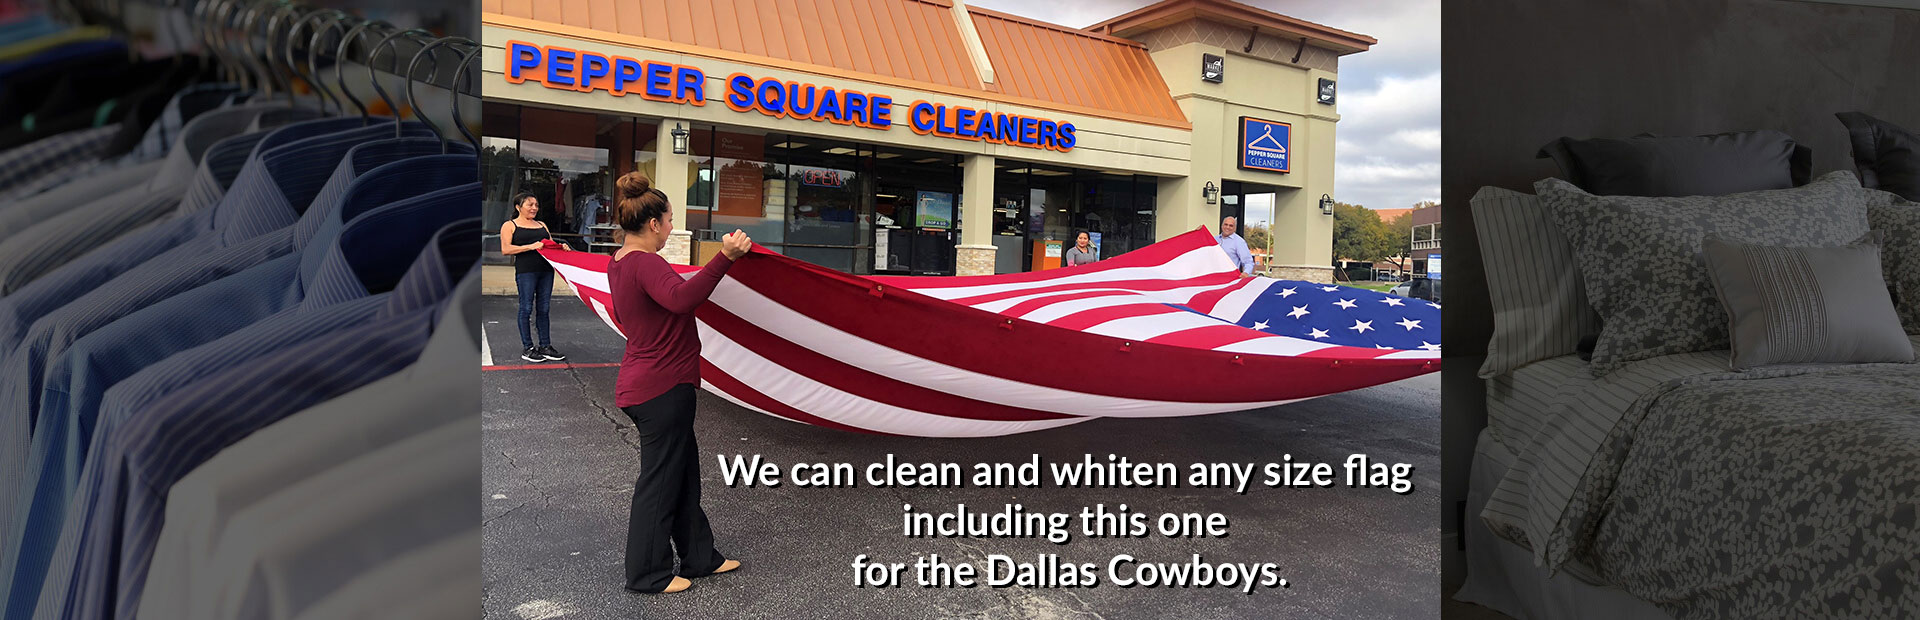 Dry clean Large Flags